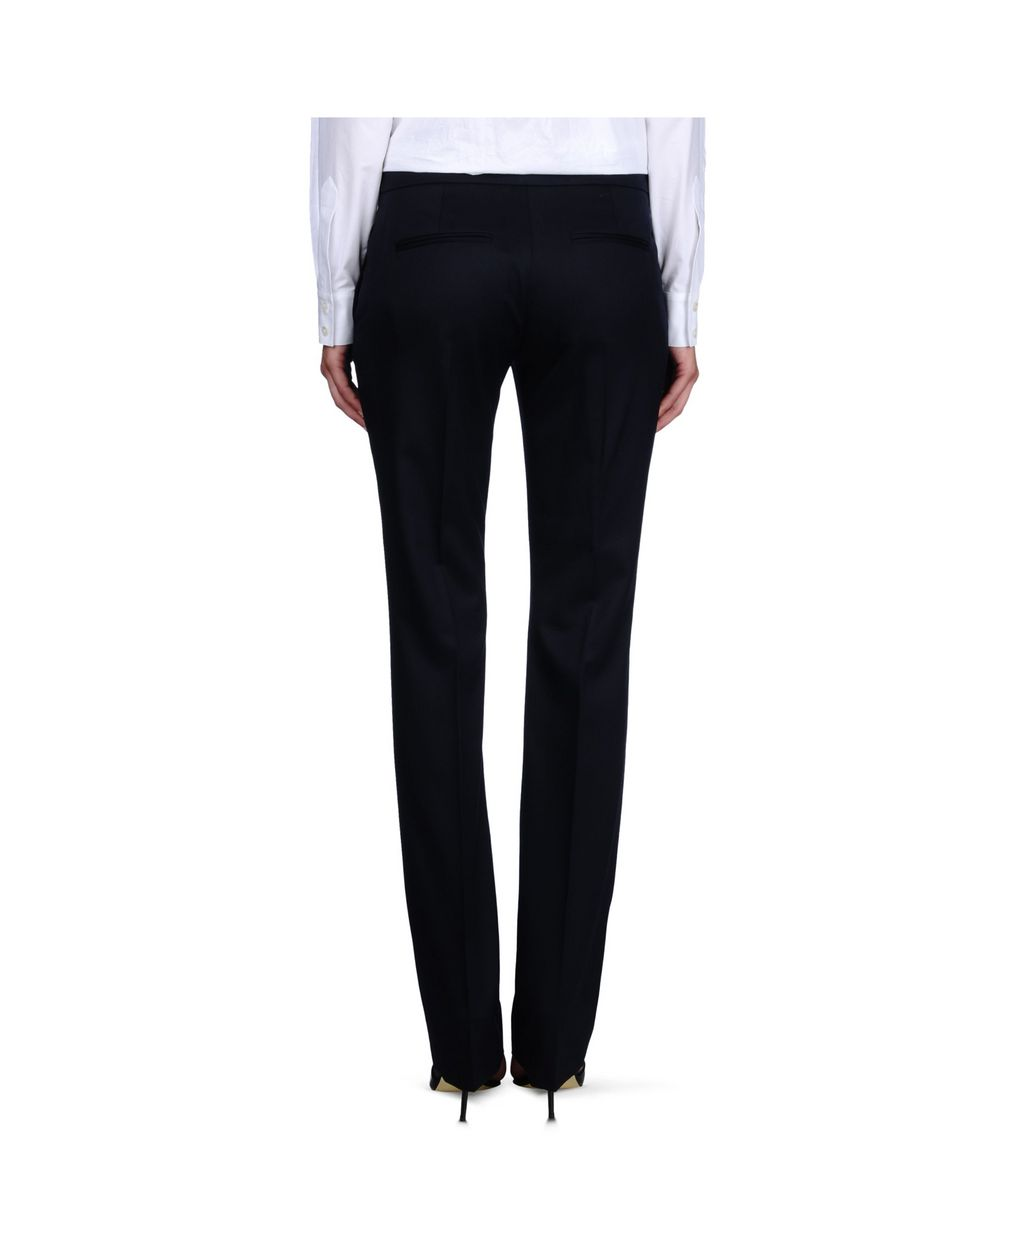 Ink Anna Trousers - STELLA MCCARTNEY